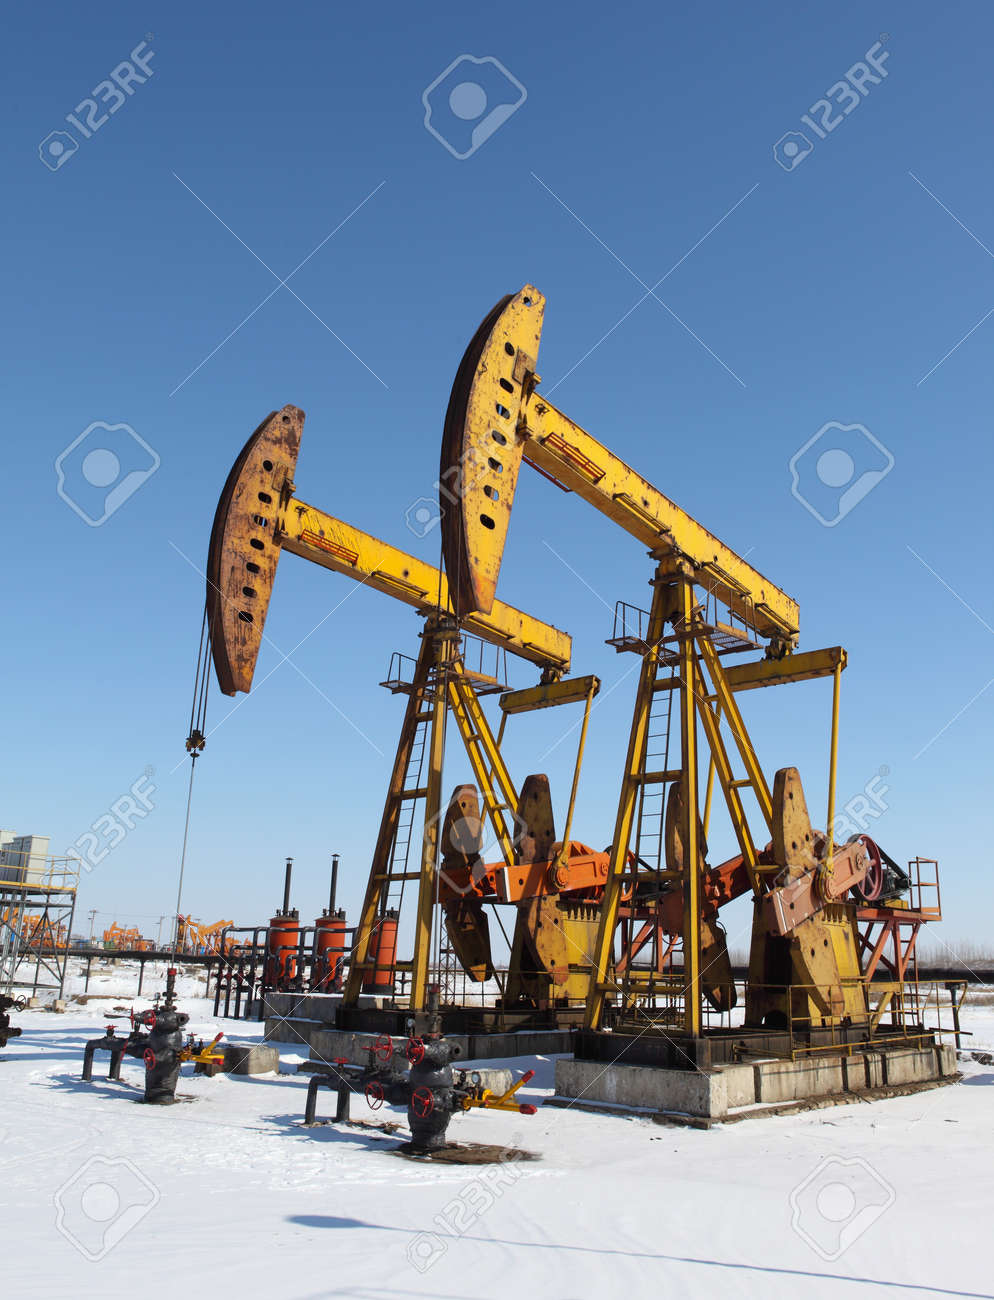 Oil pumps  Oil industry equipment Stock Photo - 17140440